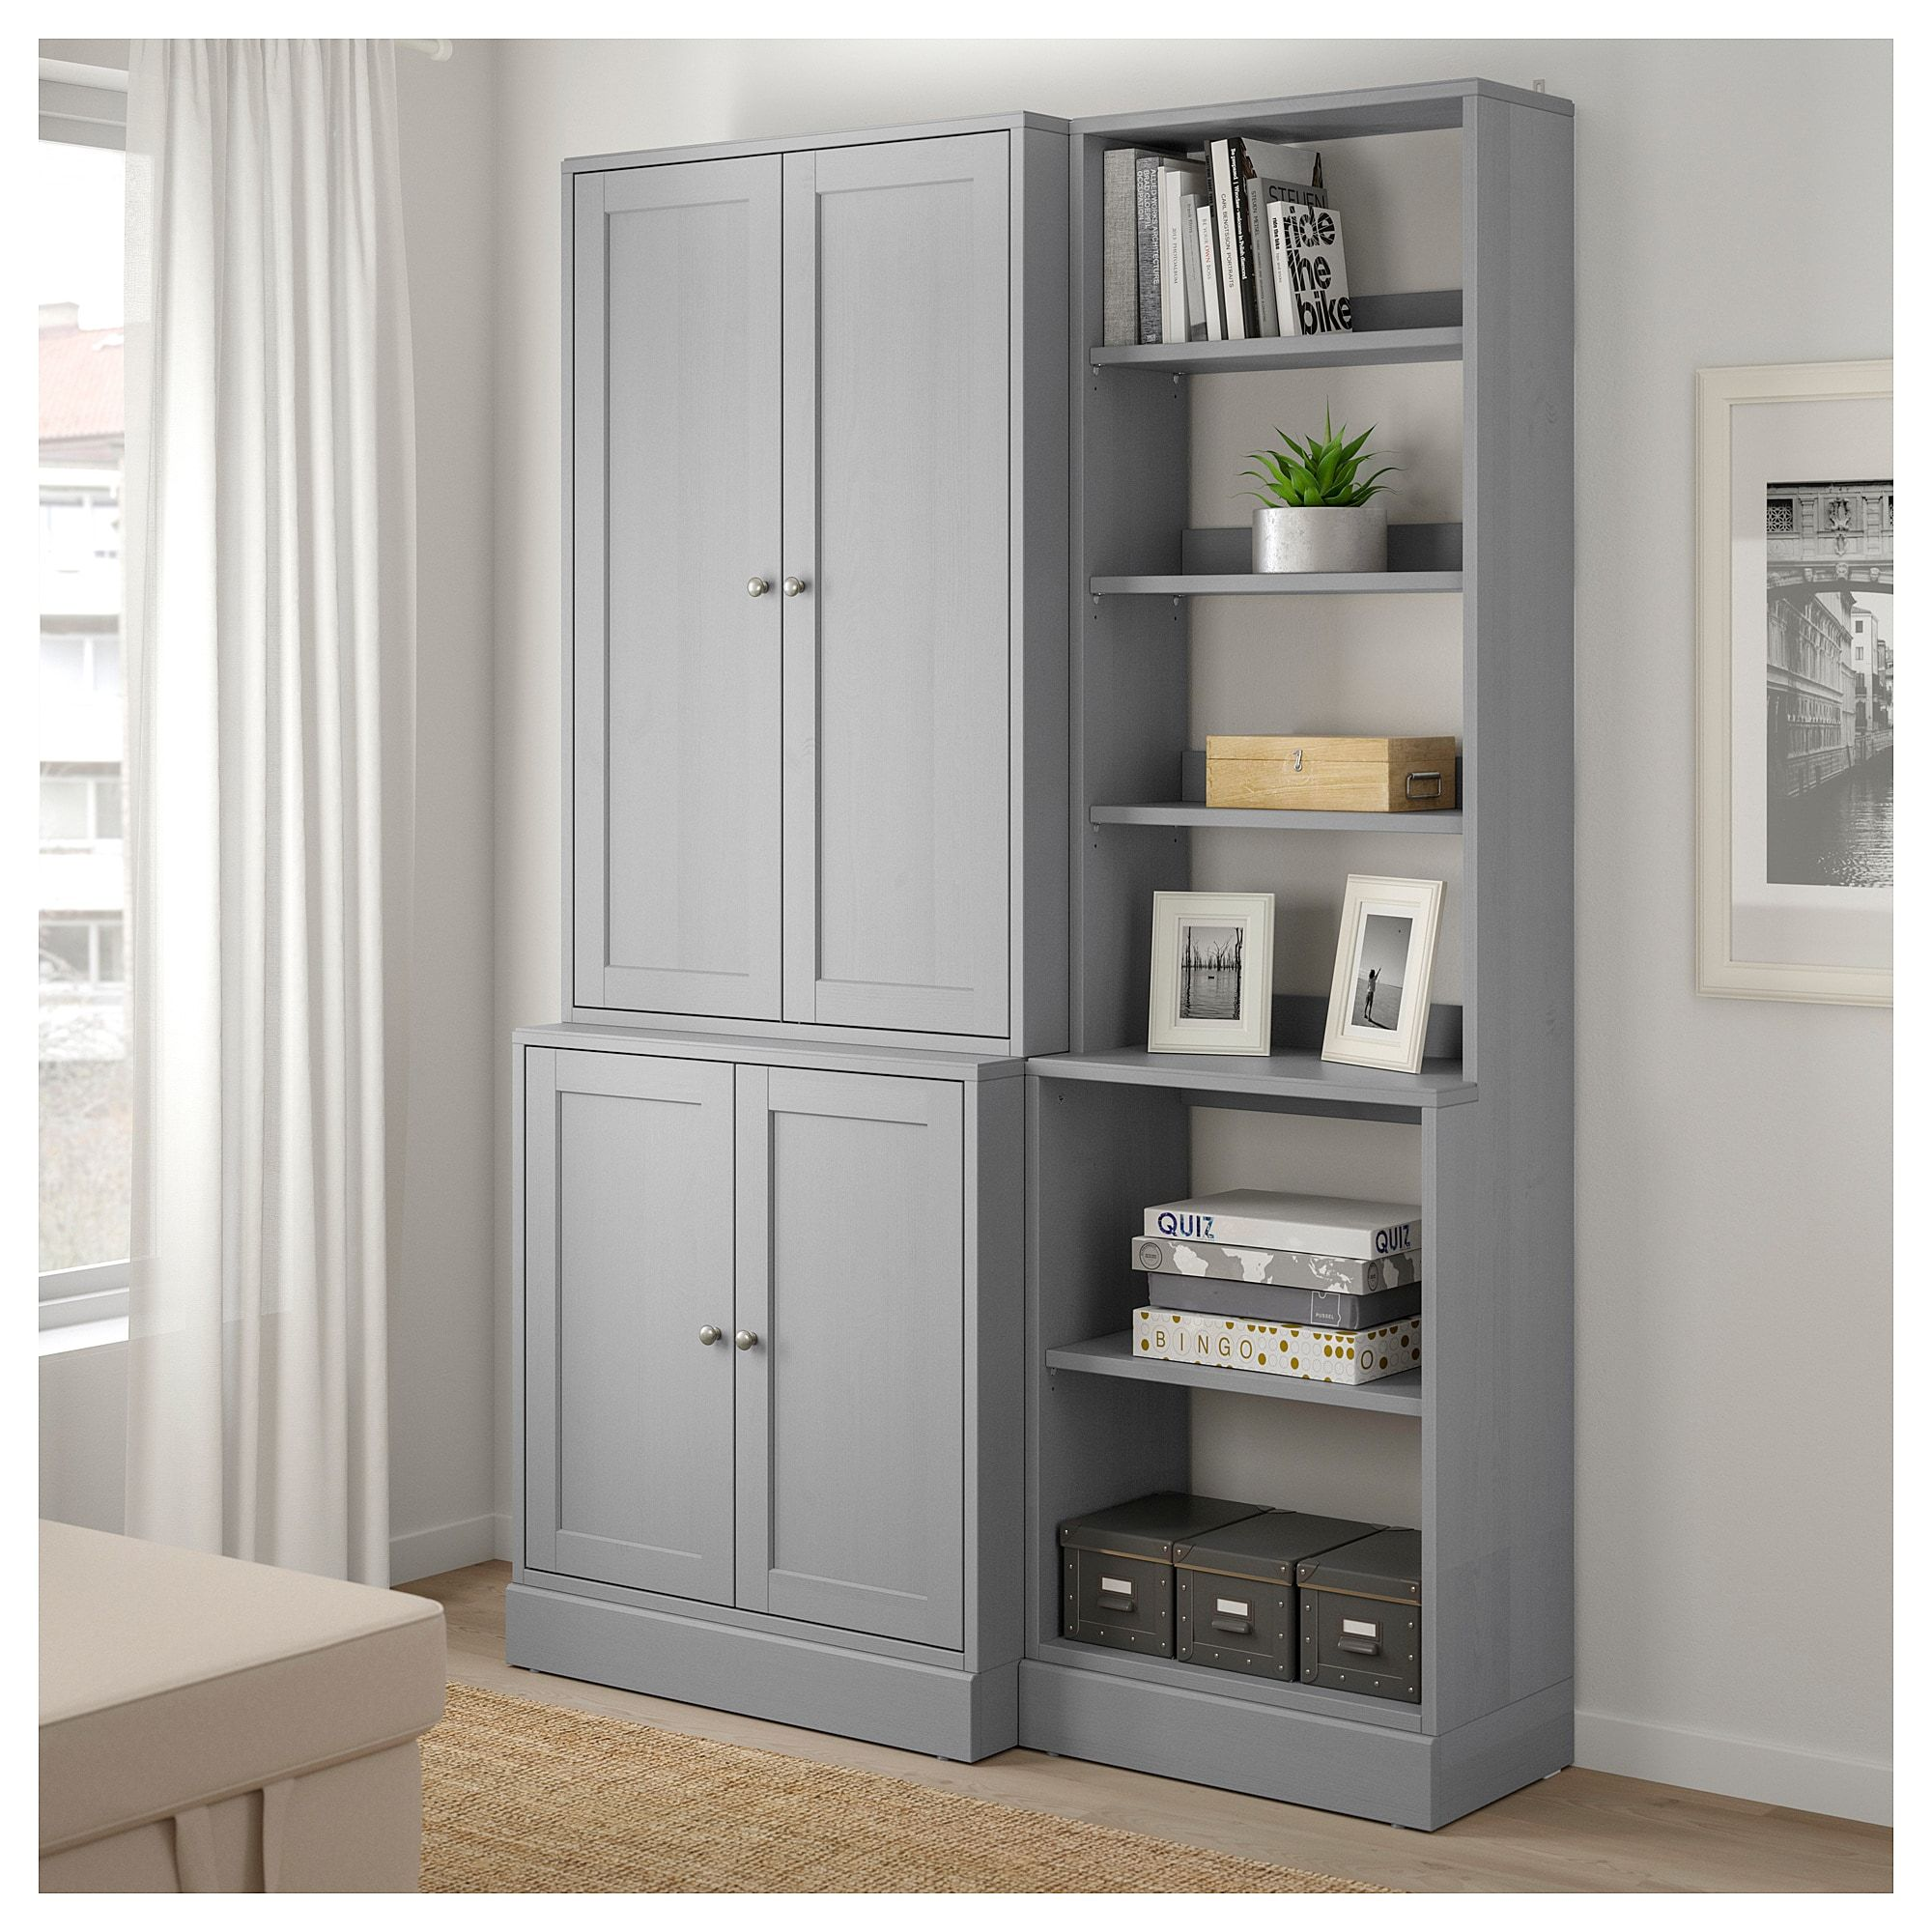 HAVSTA Storage combination gray 55 7/8x18 1/2x83 1/2